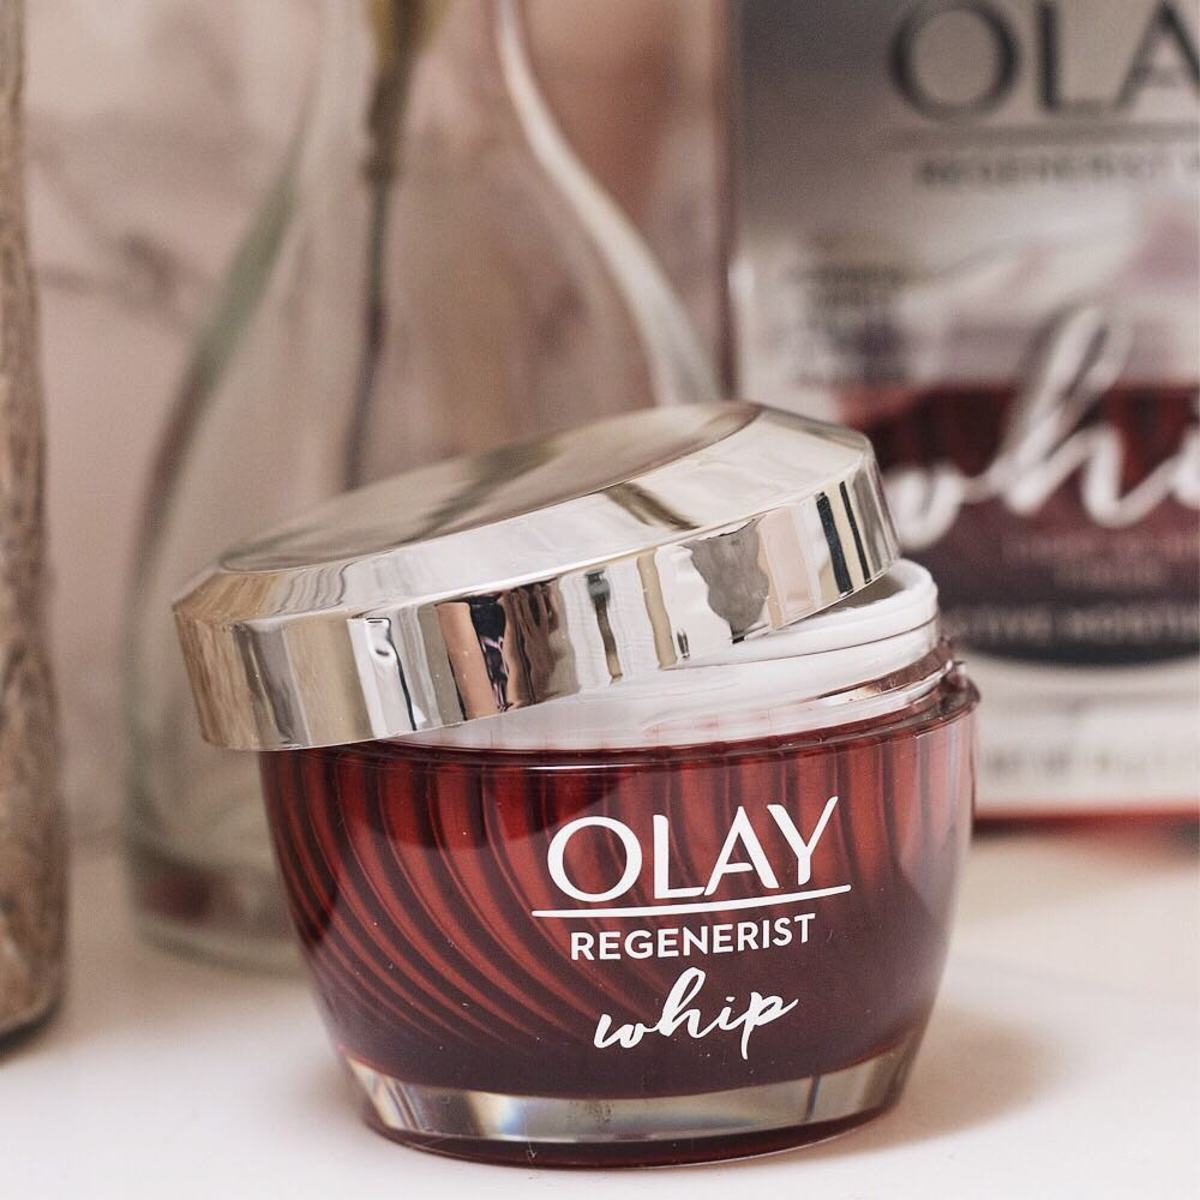 Olay's new Regnerist Whip Moisturizer. Photo: @angoodhue/Instagram